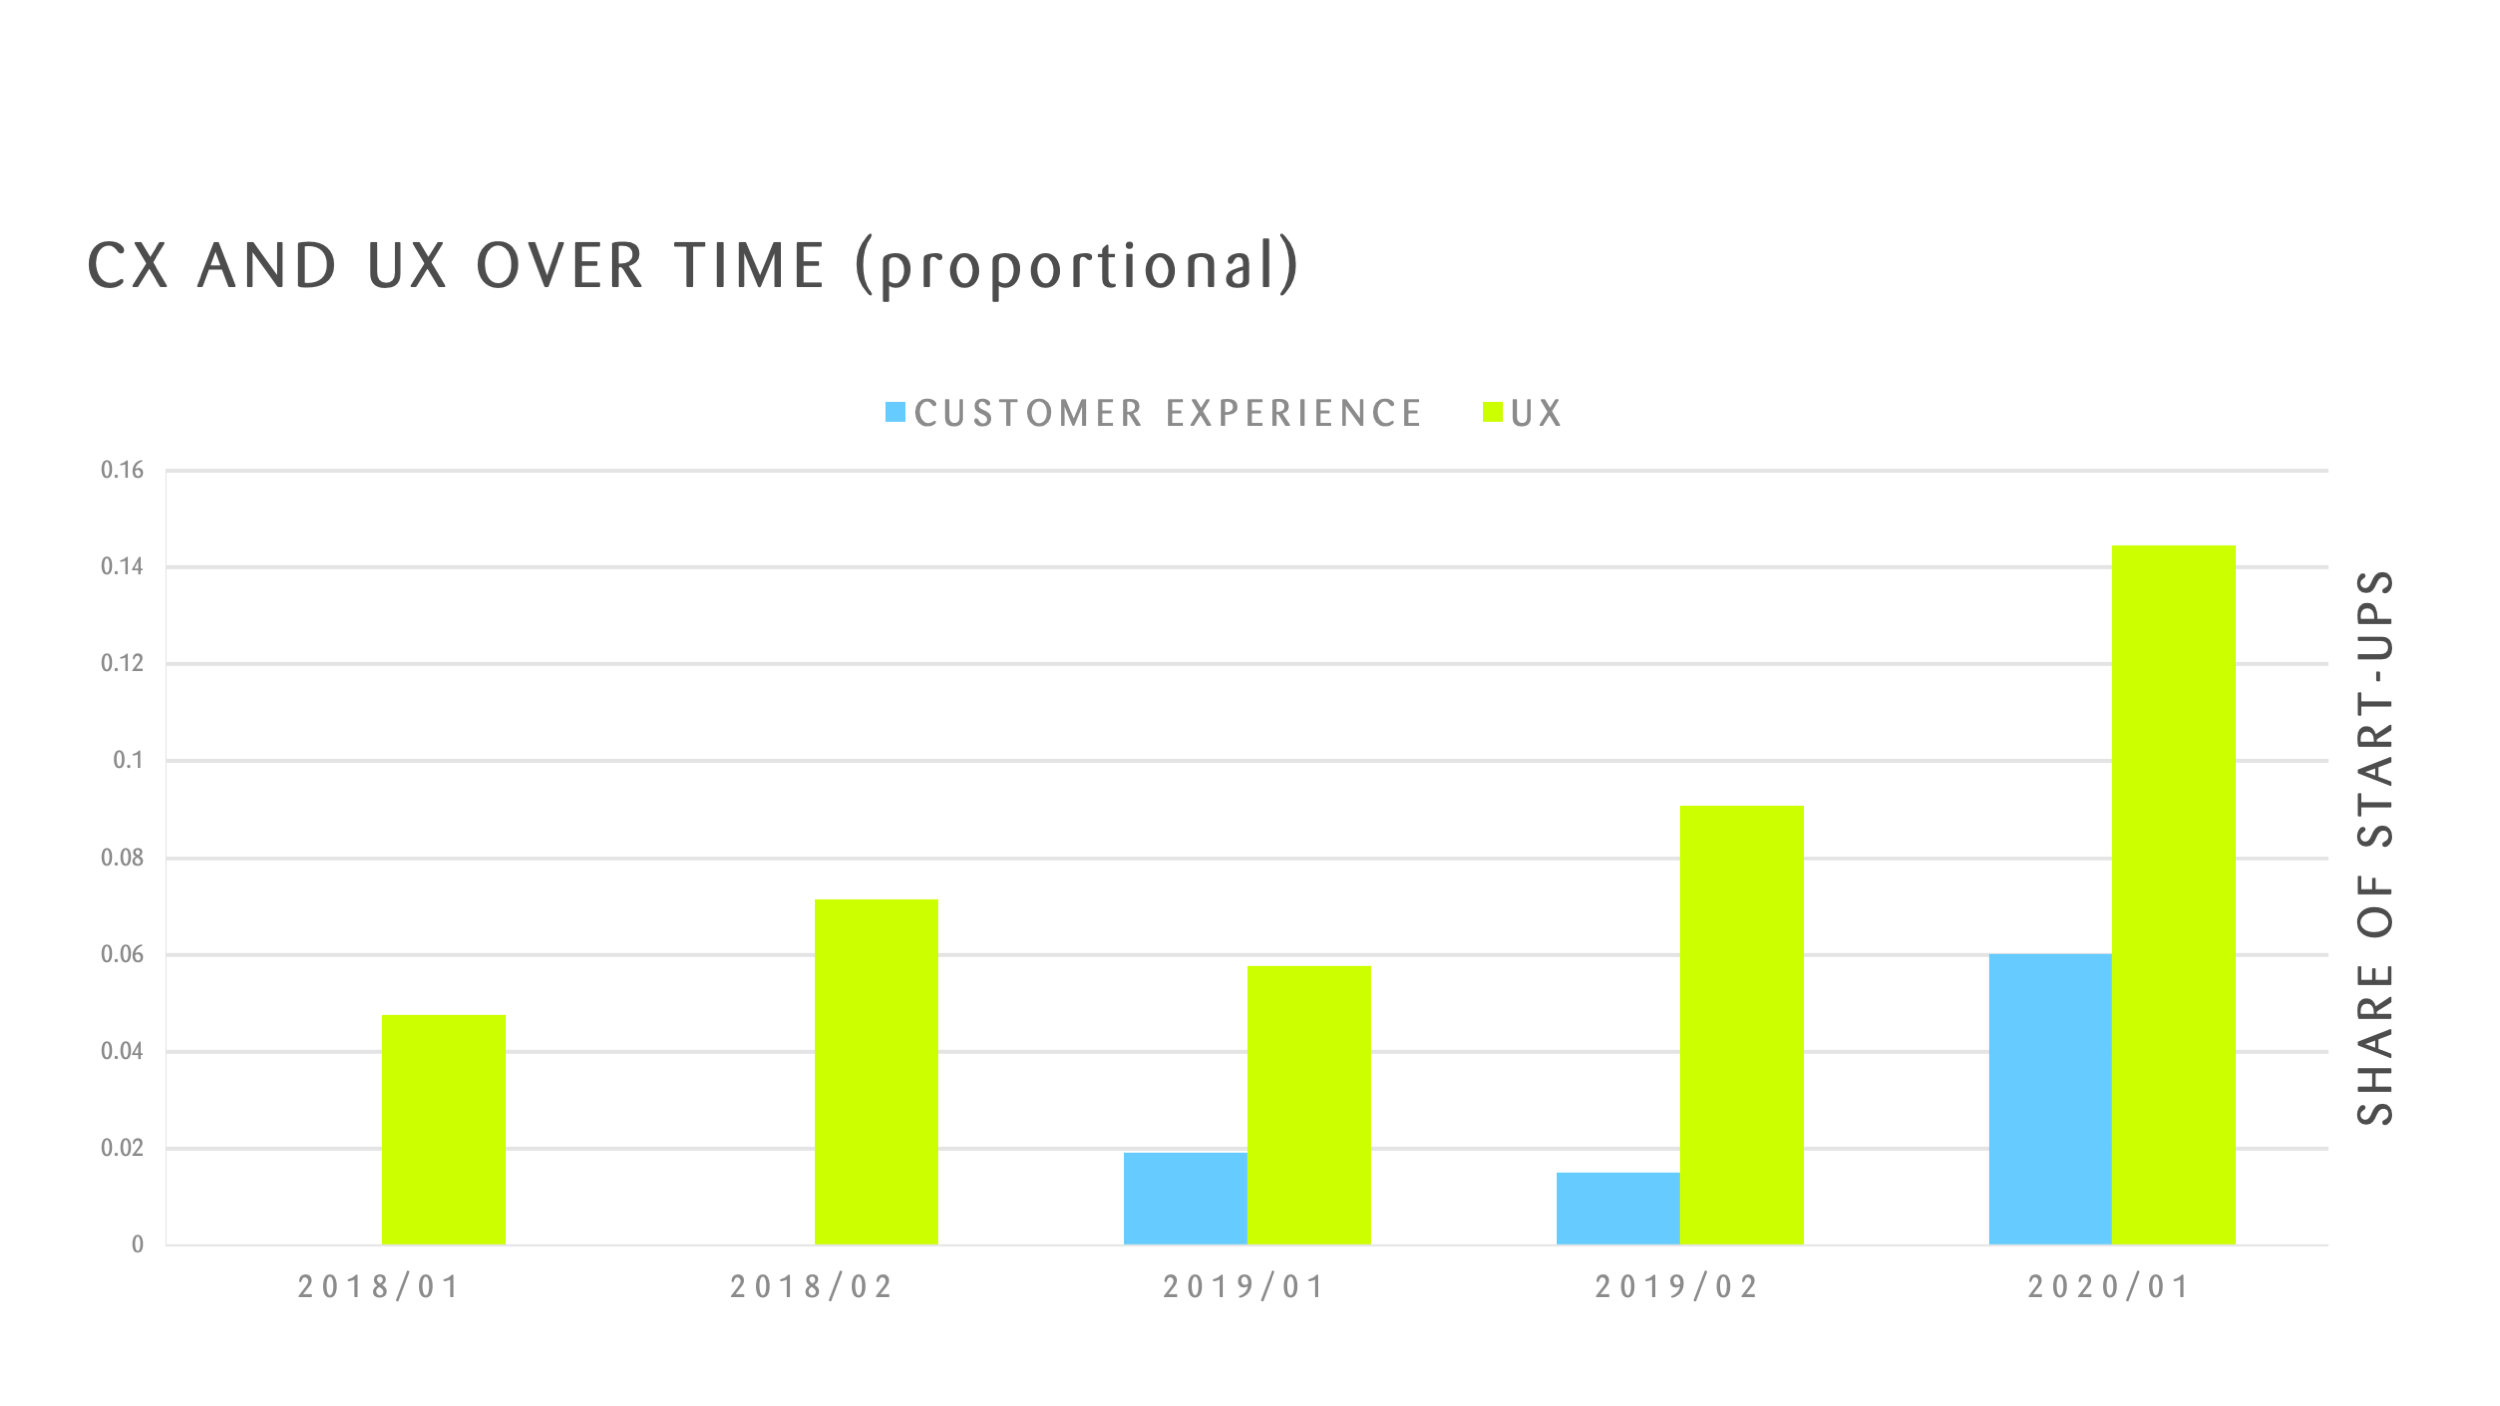 customer experience ove rtime